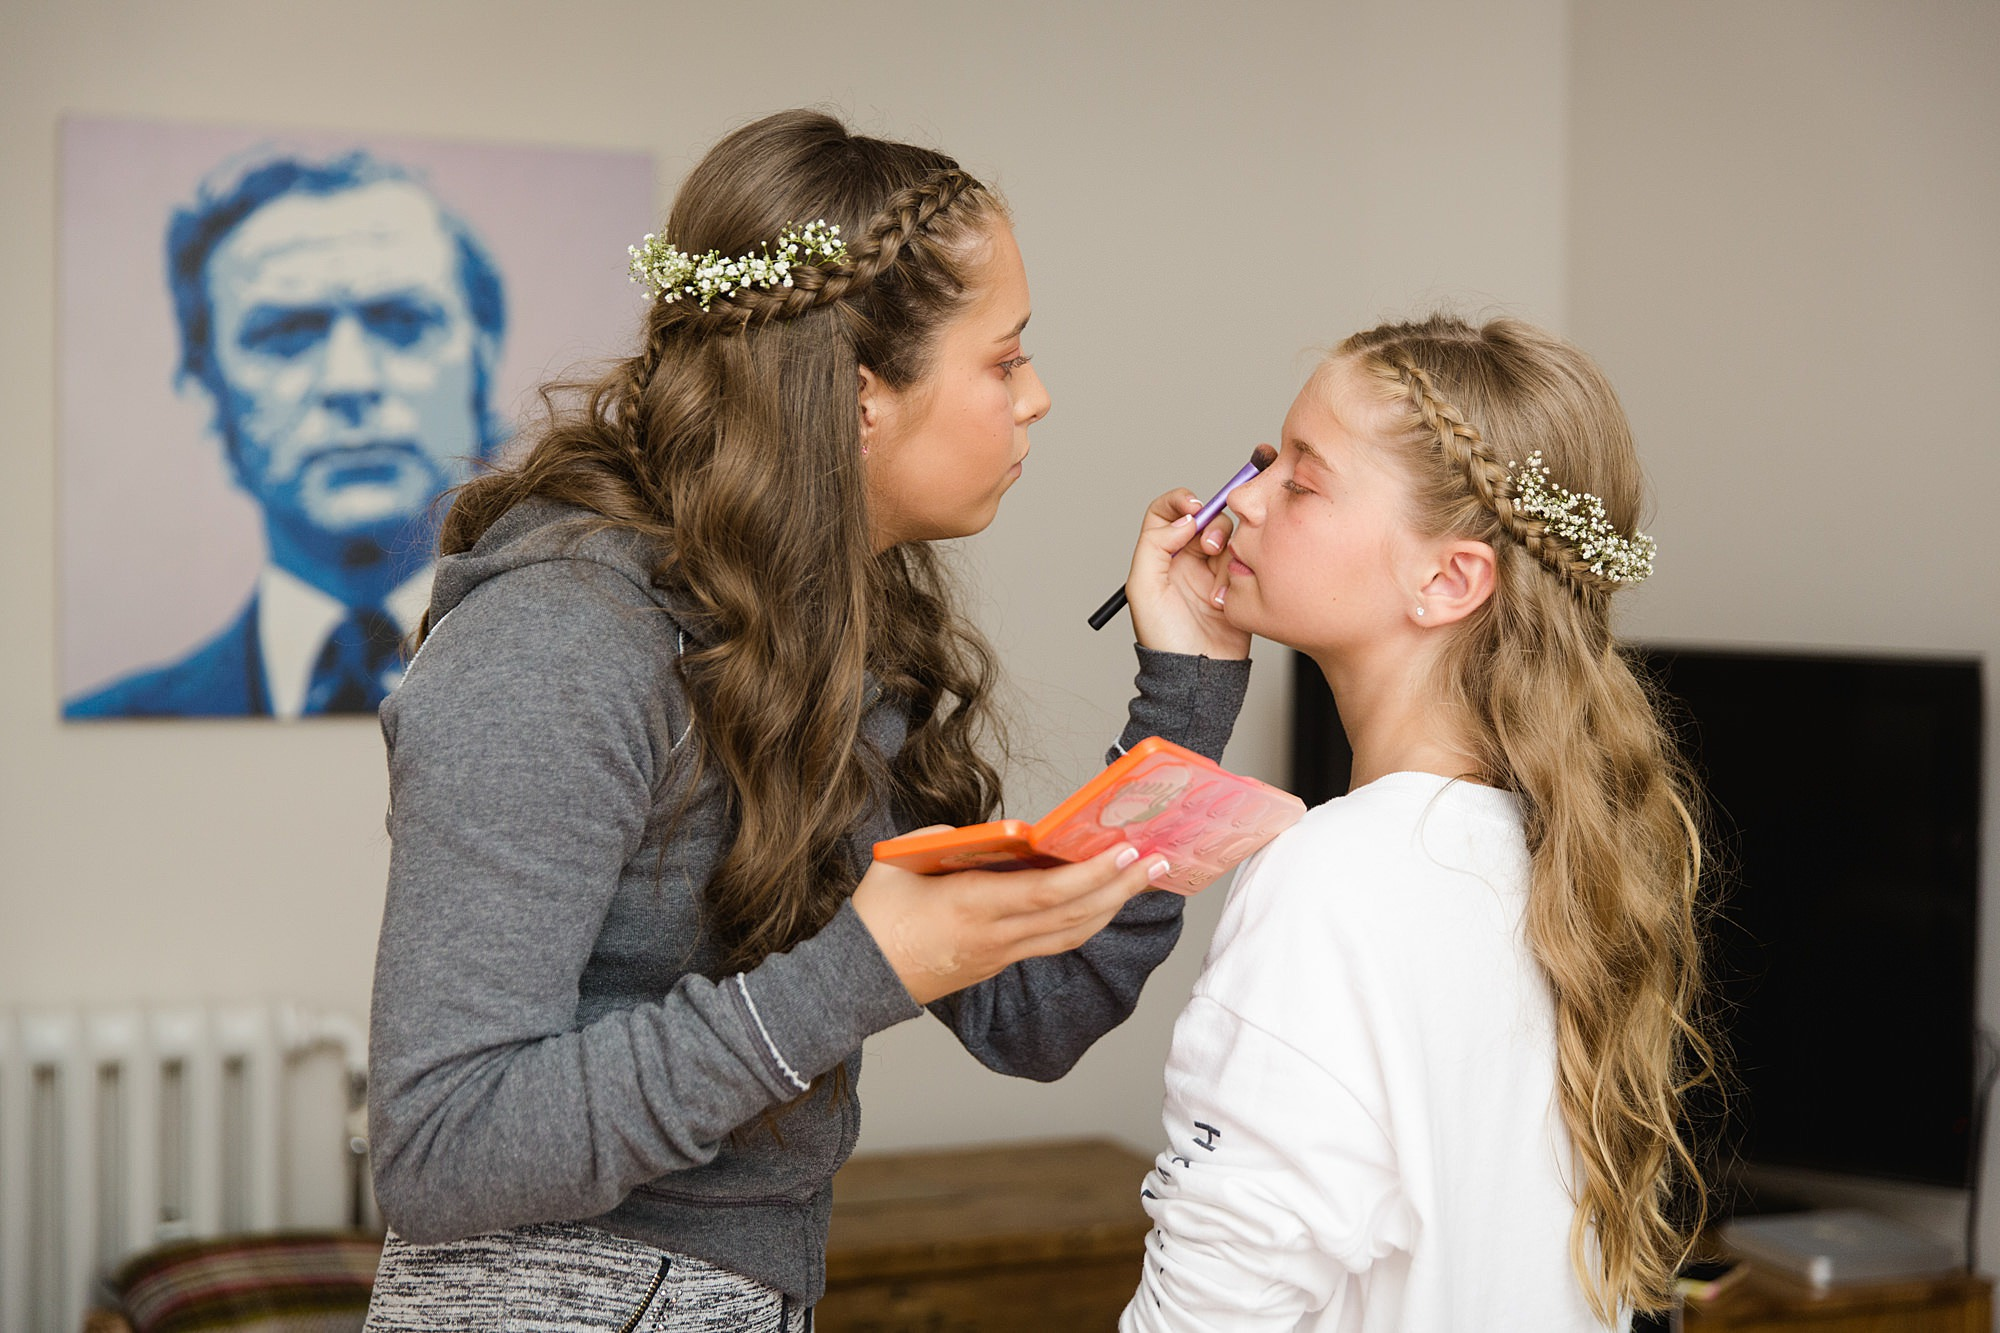 Writtle university college wedding bridesmaid's do their makeup